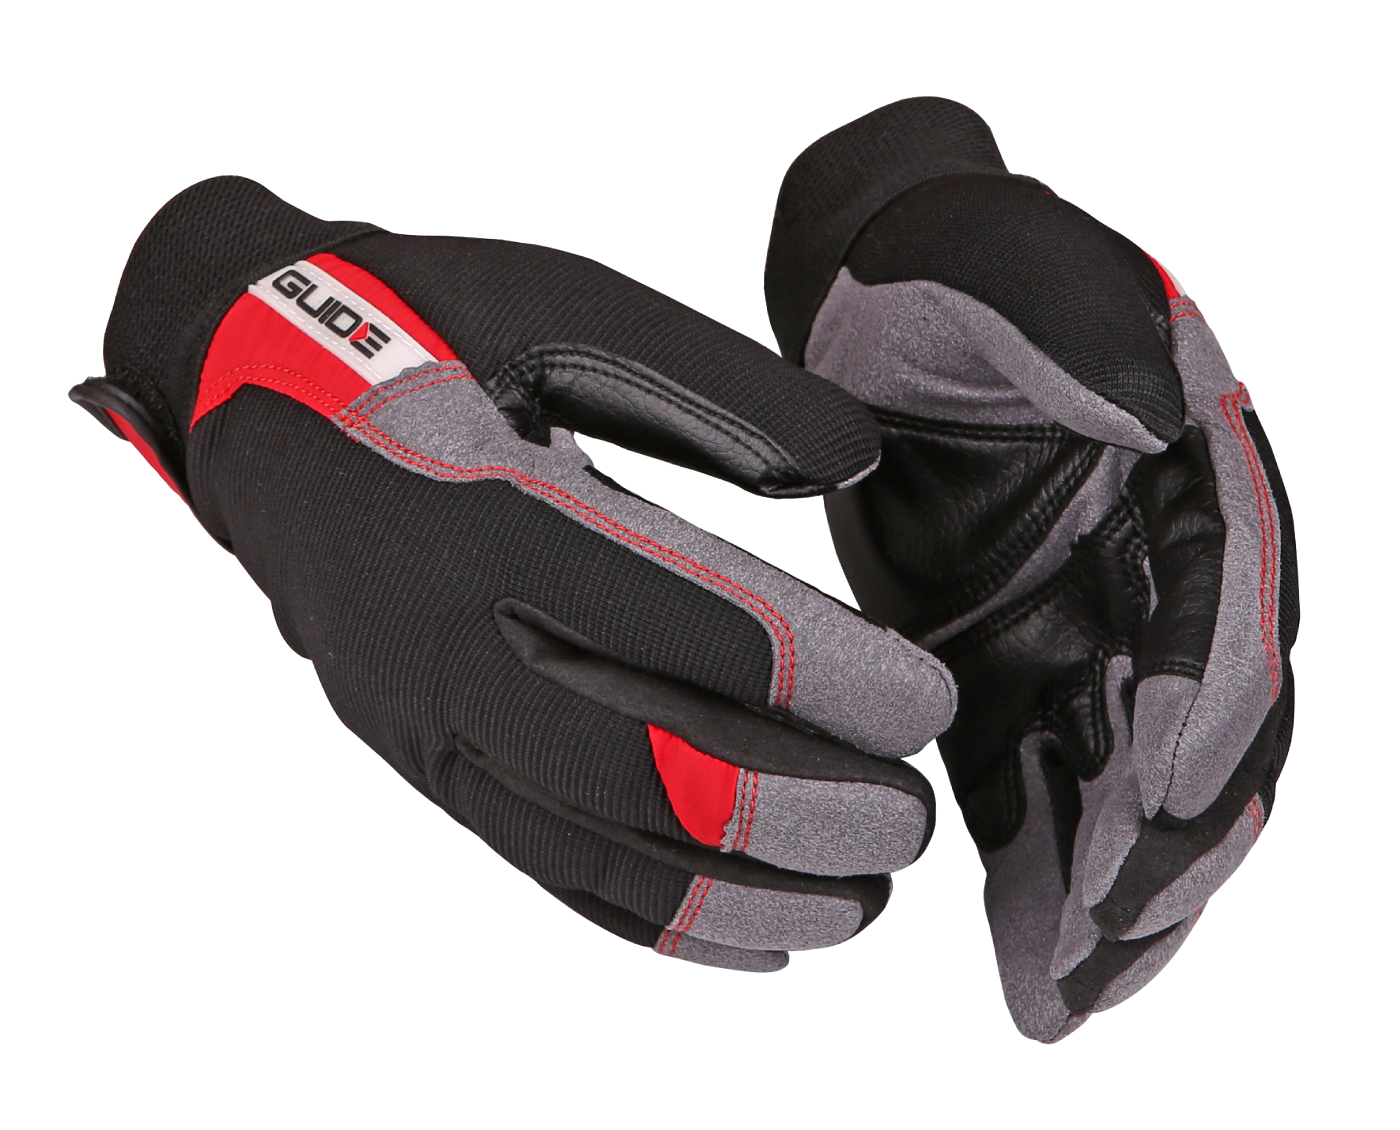 Warm Lined Glove GUIDE 5010W